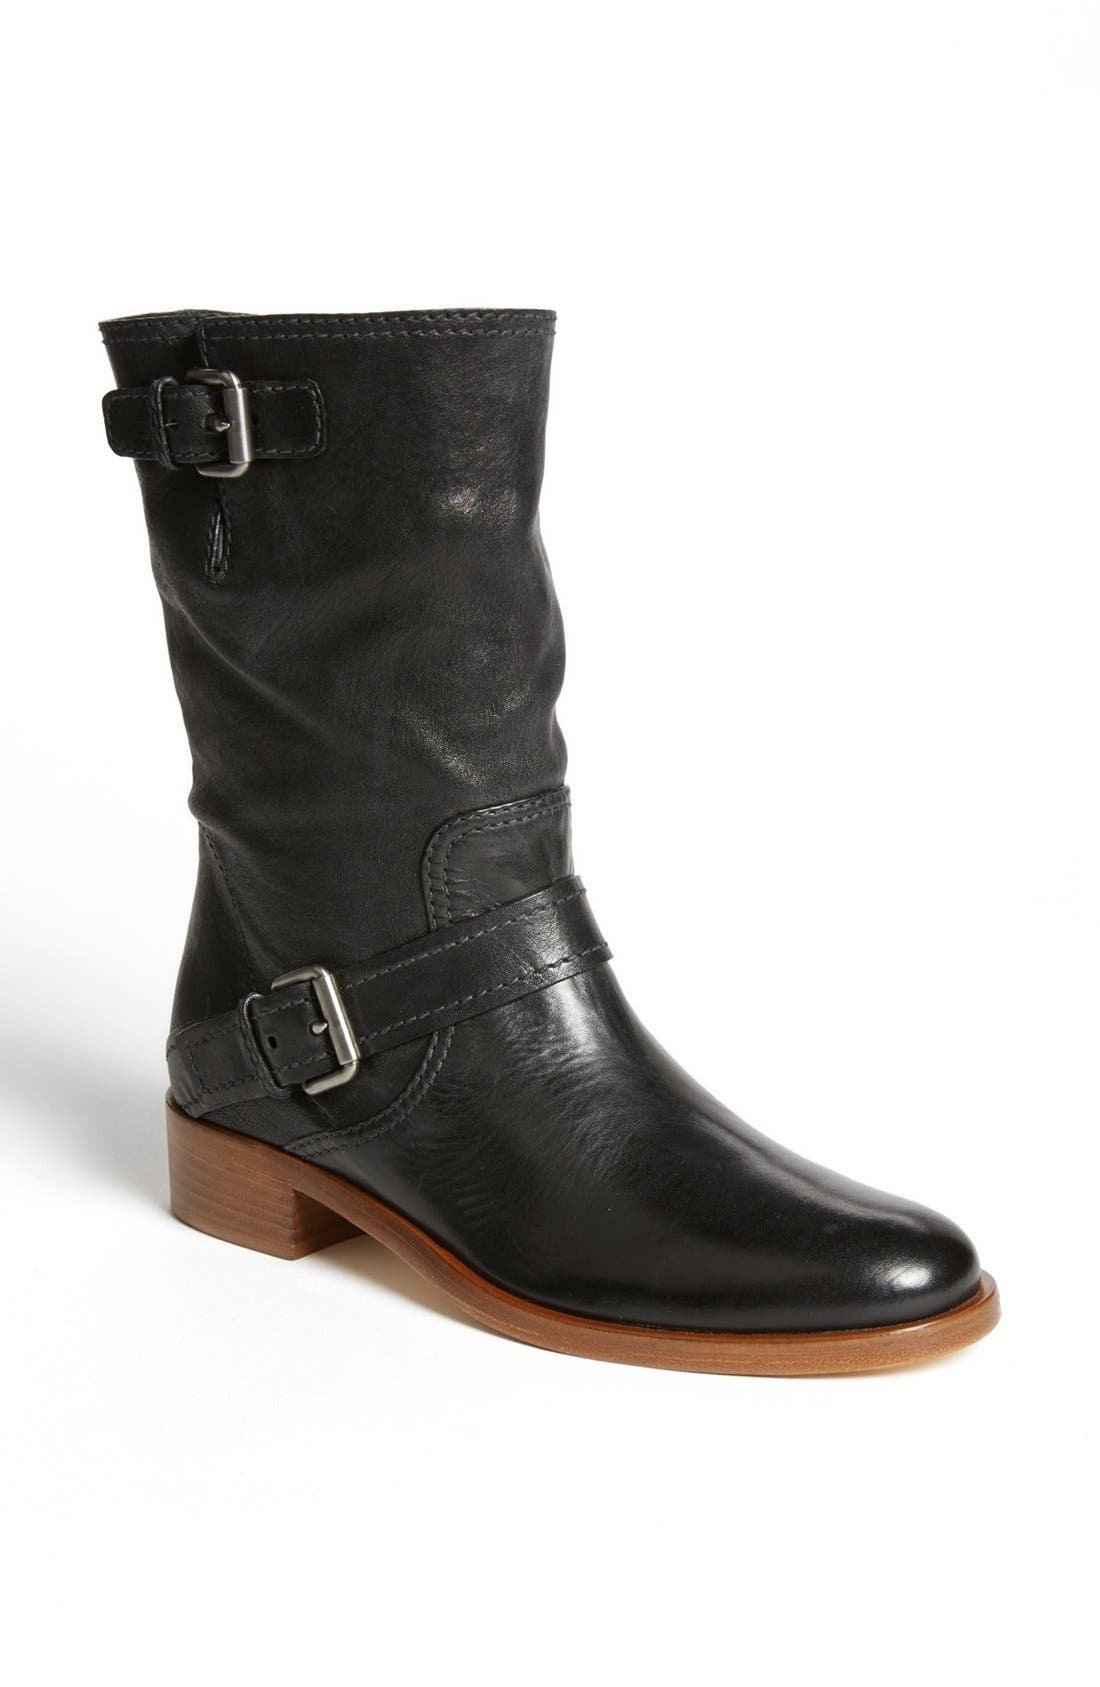 Main Image - Miu Miu Double Buckle Short Boot